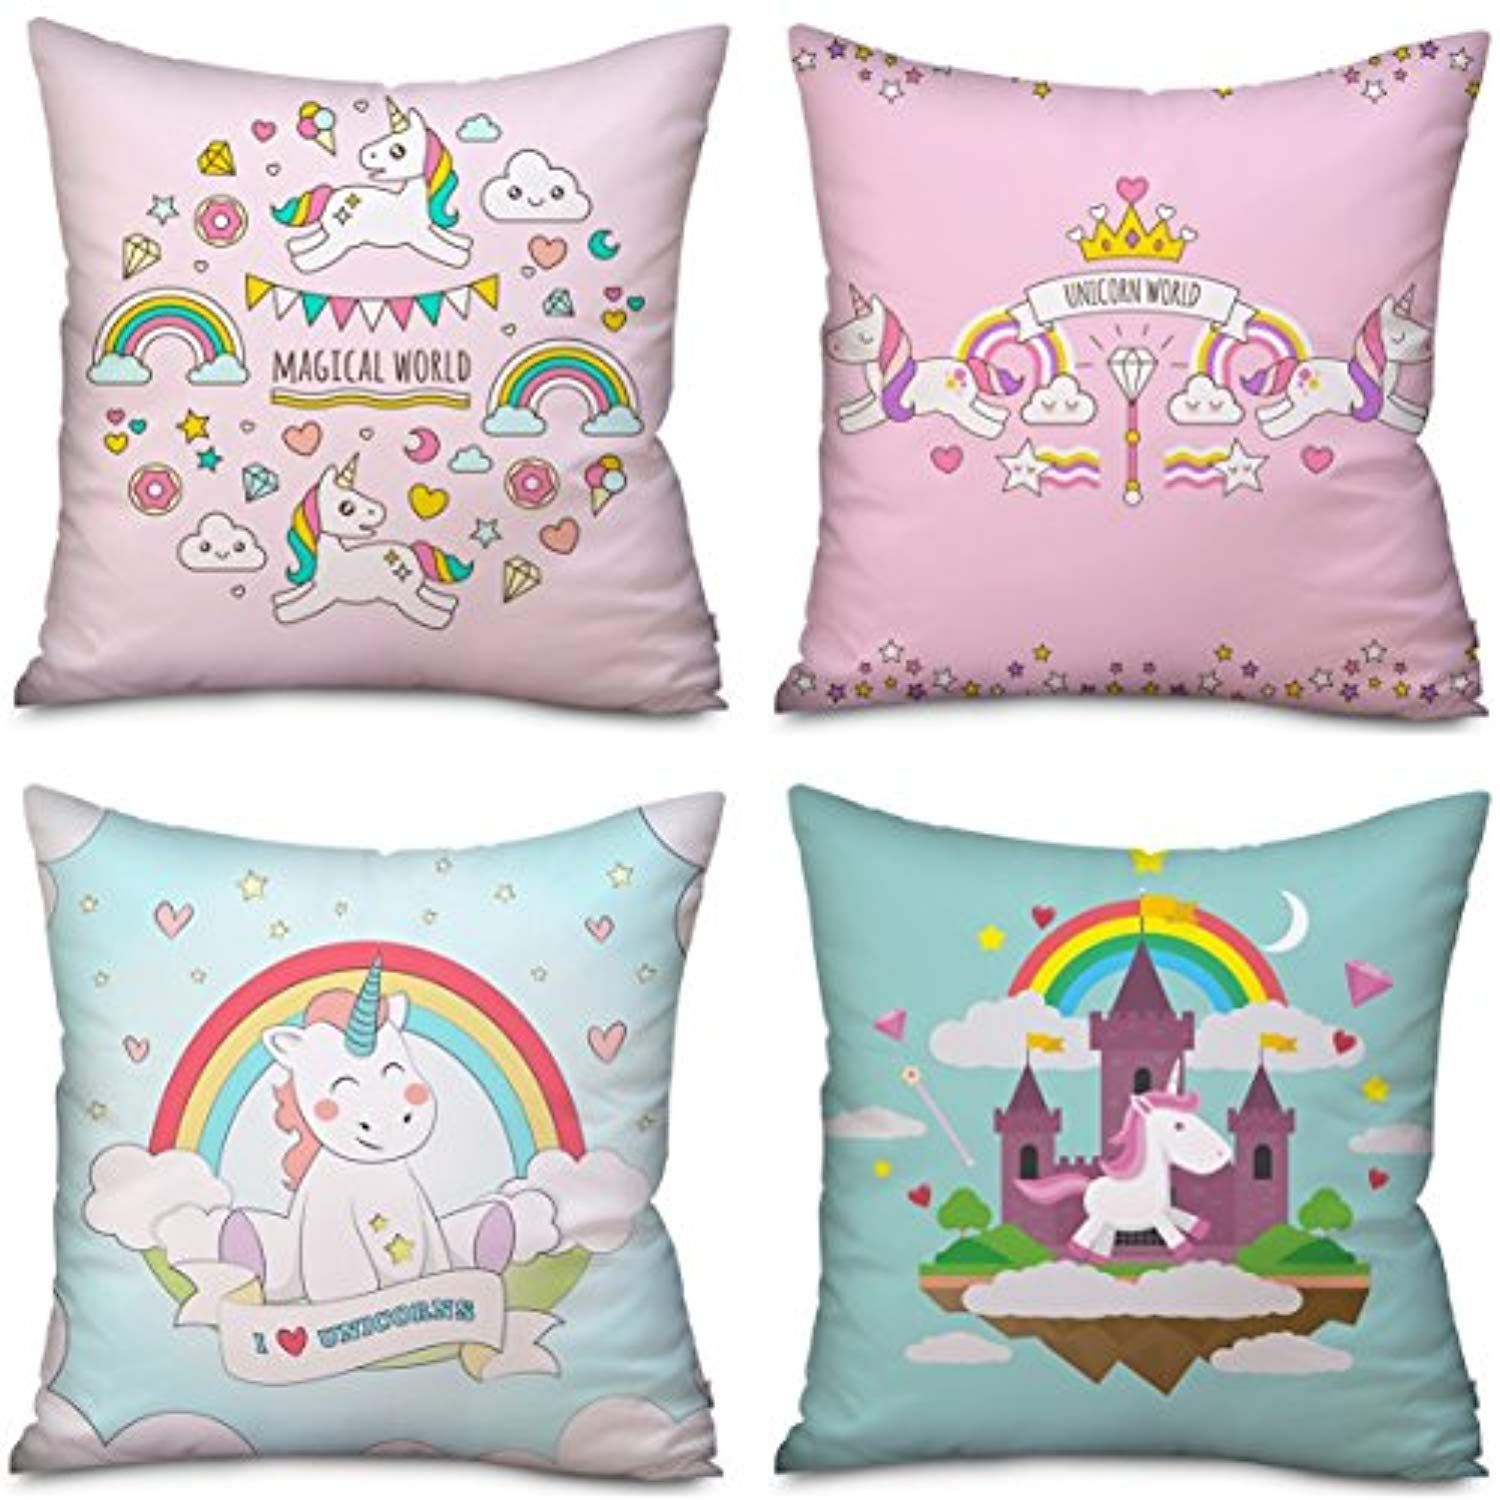 pack unicorn pillow case cushion covers home decor unicorn gifts